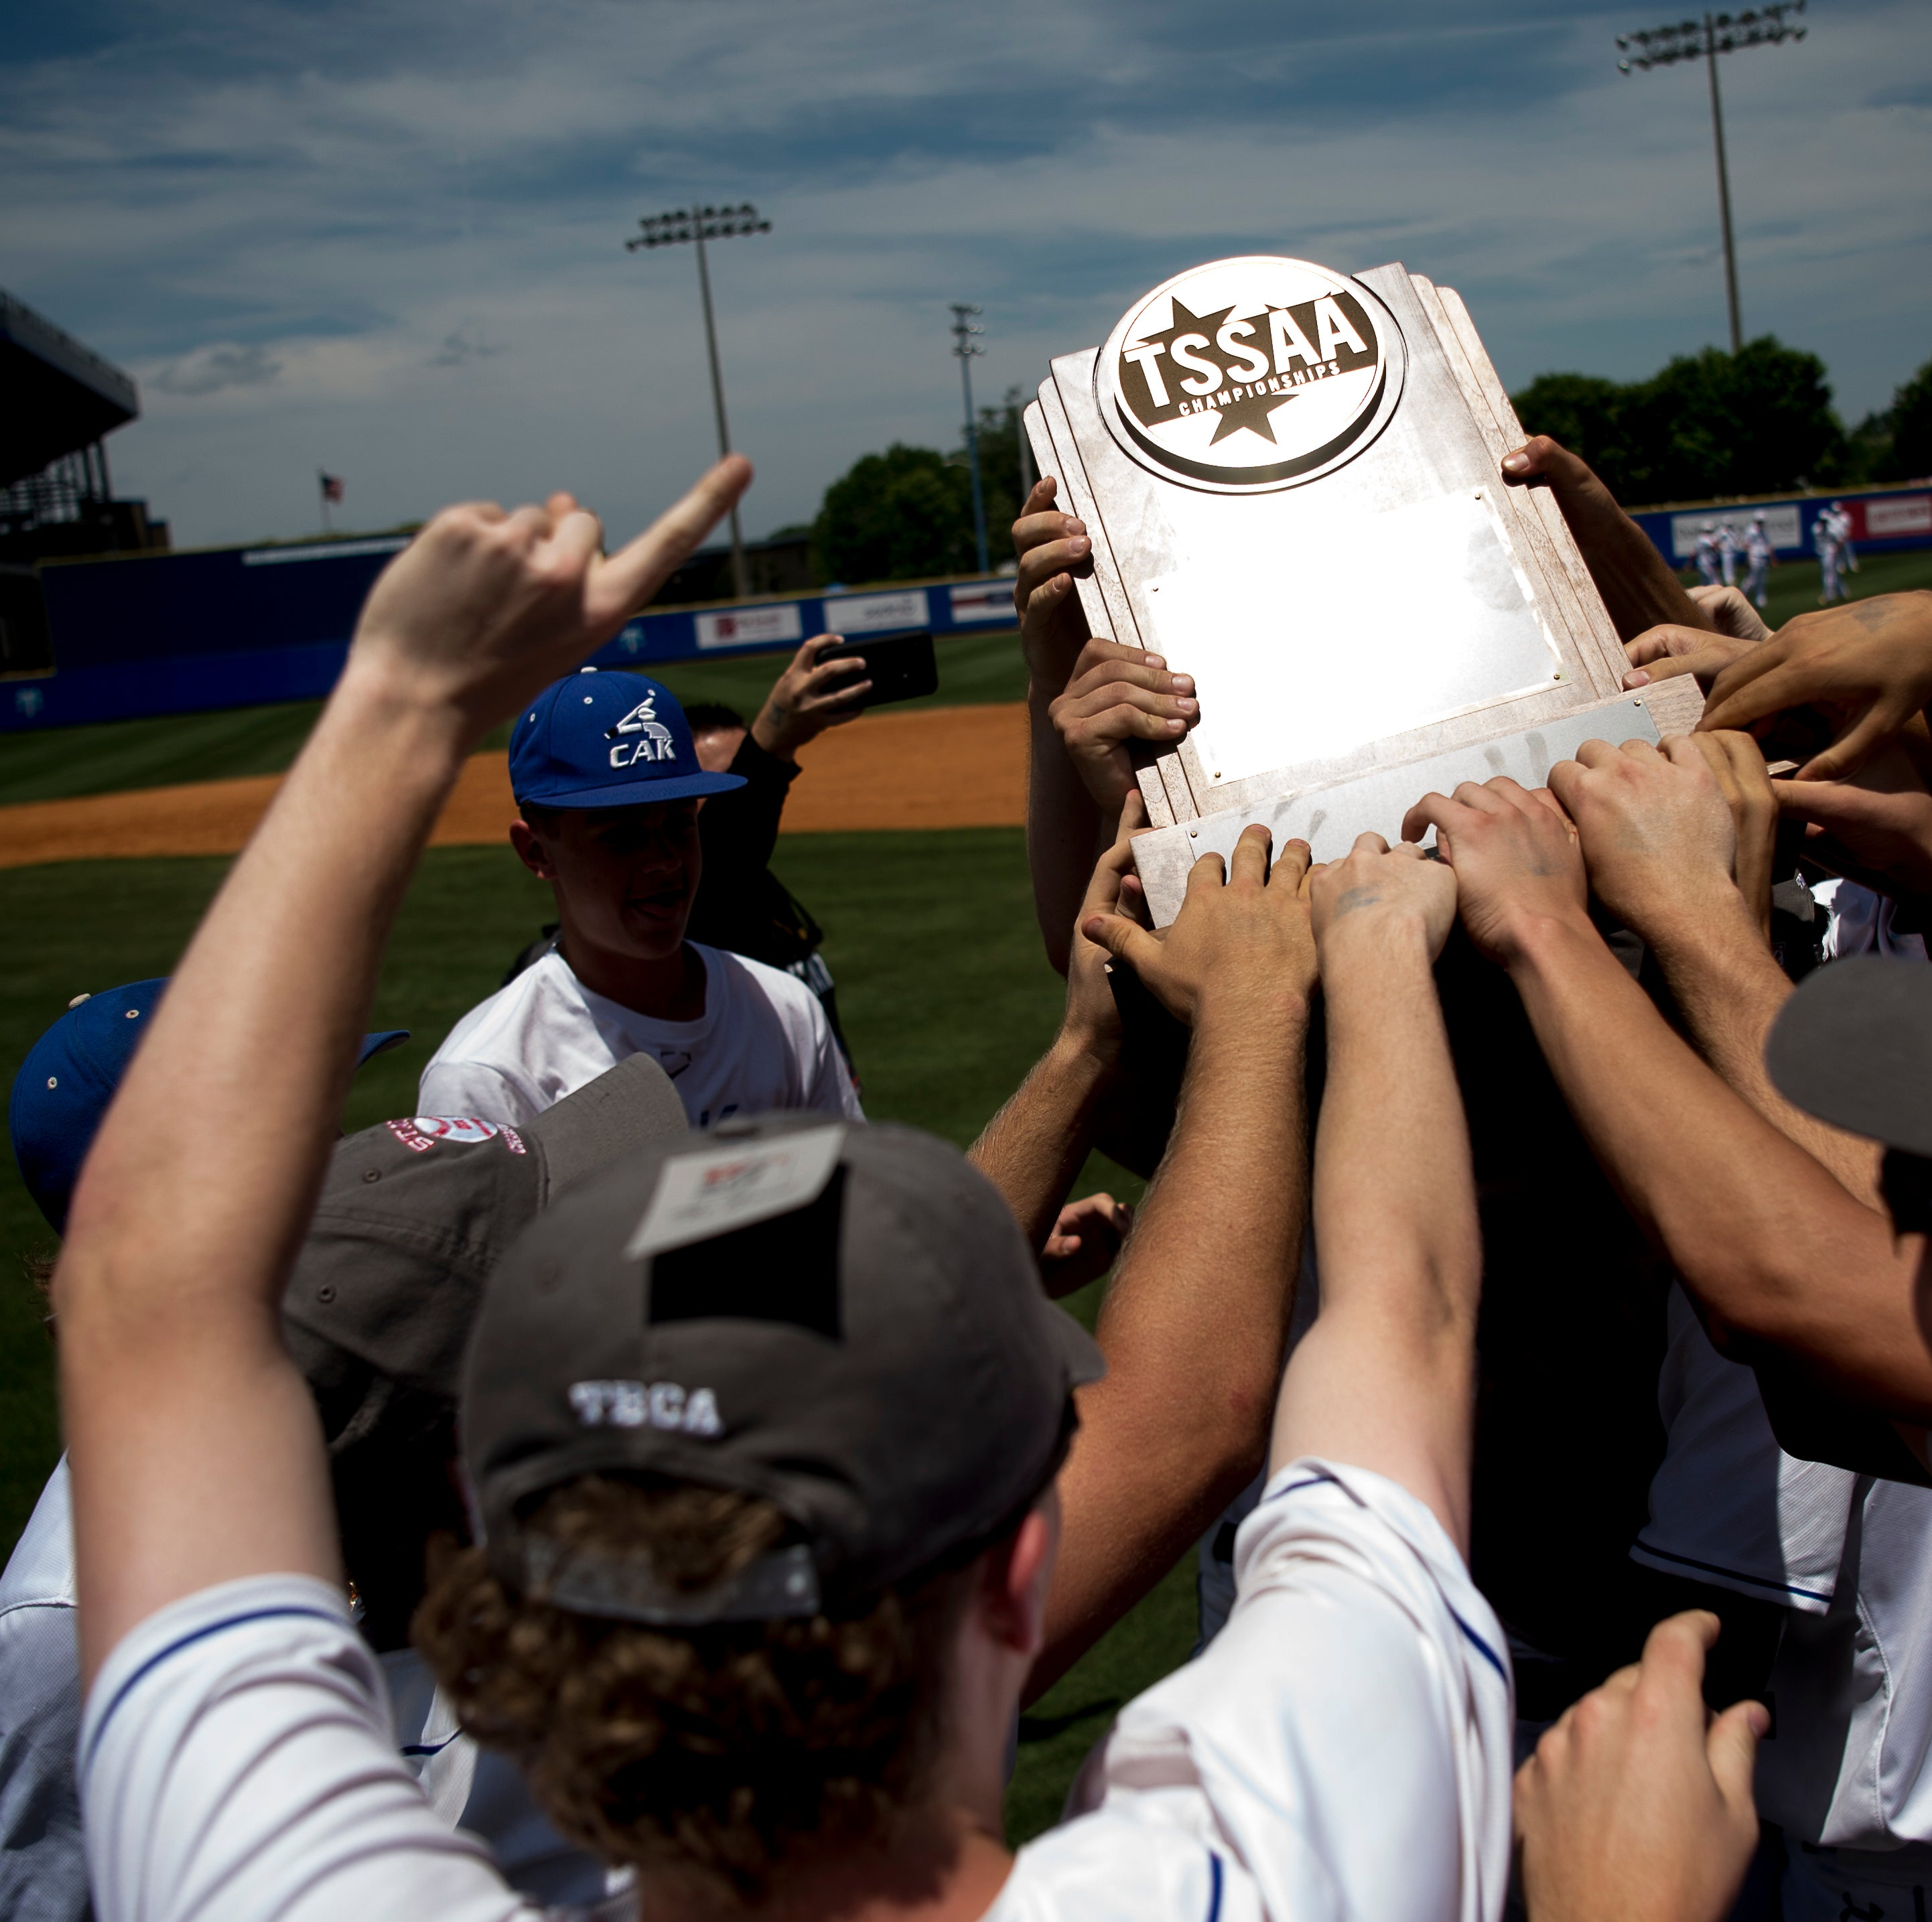 CAK celebrates their 3-2 win over CPA during a Division II-A championship game at the TSSAA state championships in Murfreesboro, Tennessee on Thursday, May 23, 2019.